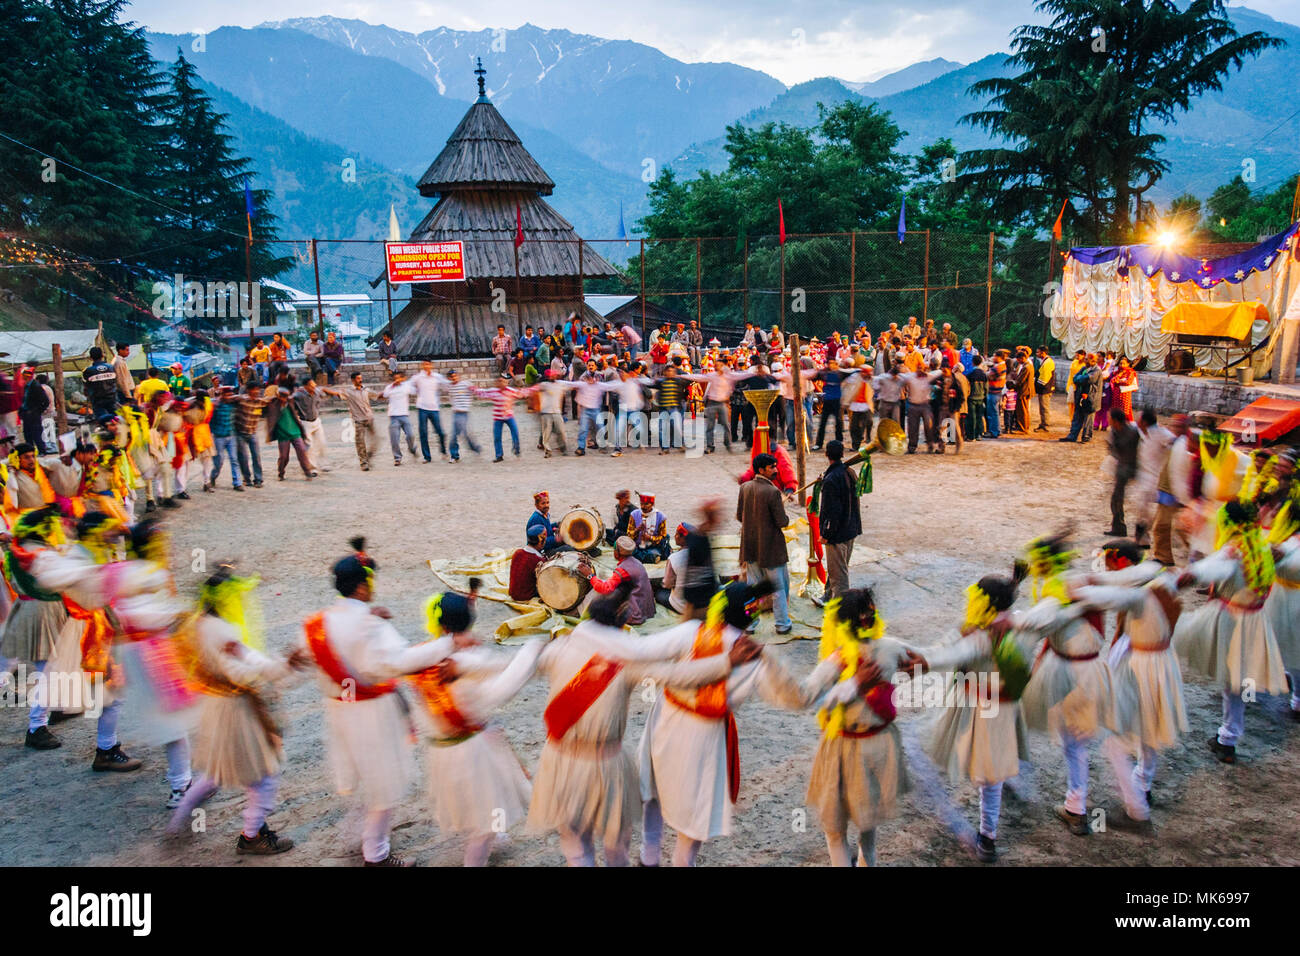 Nagar, Himachal Pradesh, India : During the Naggar Mela festival high caste rajputs dance in circles in honor of the local deity Tripura Sundari outsi - Stock Image